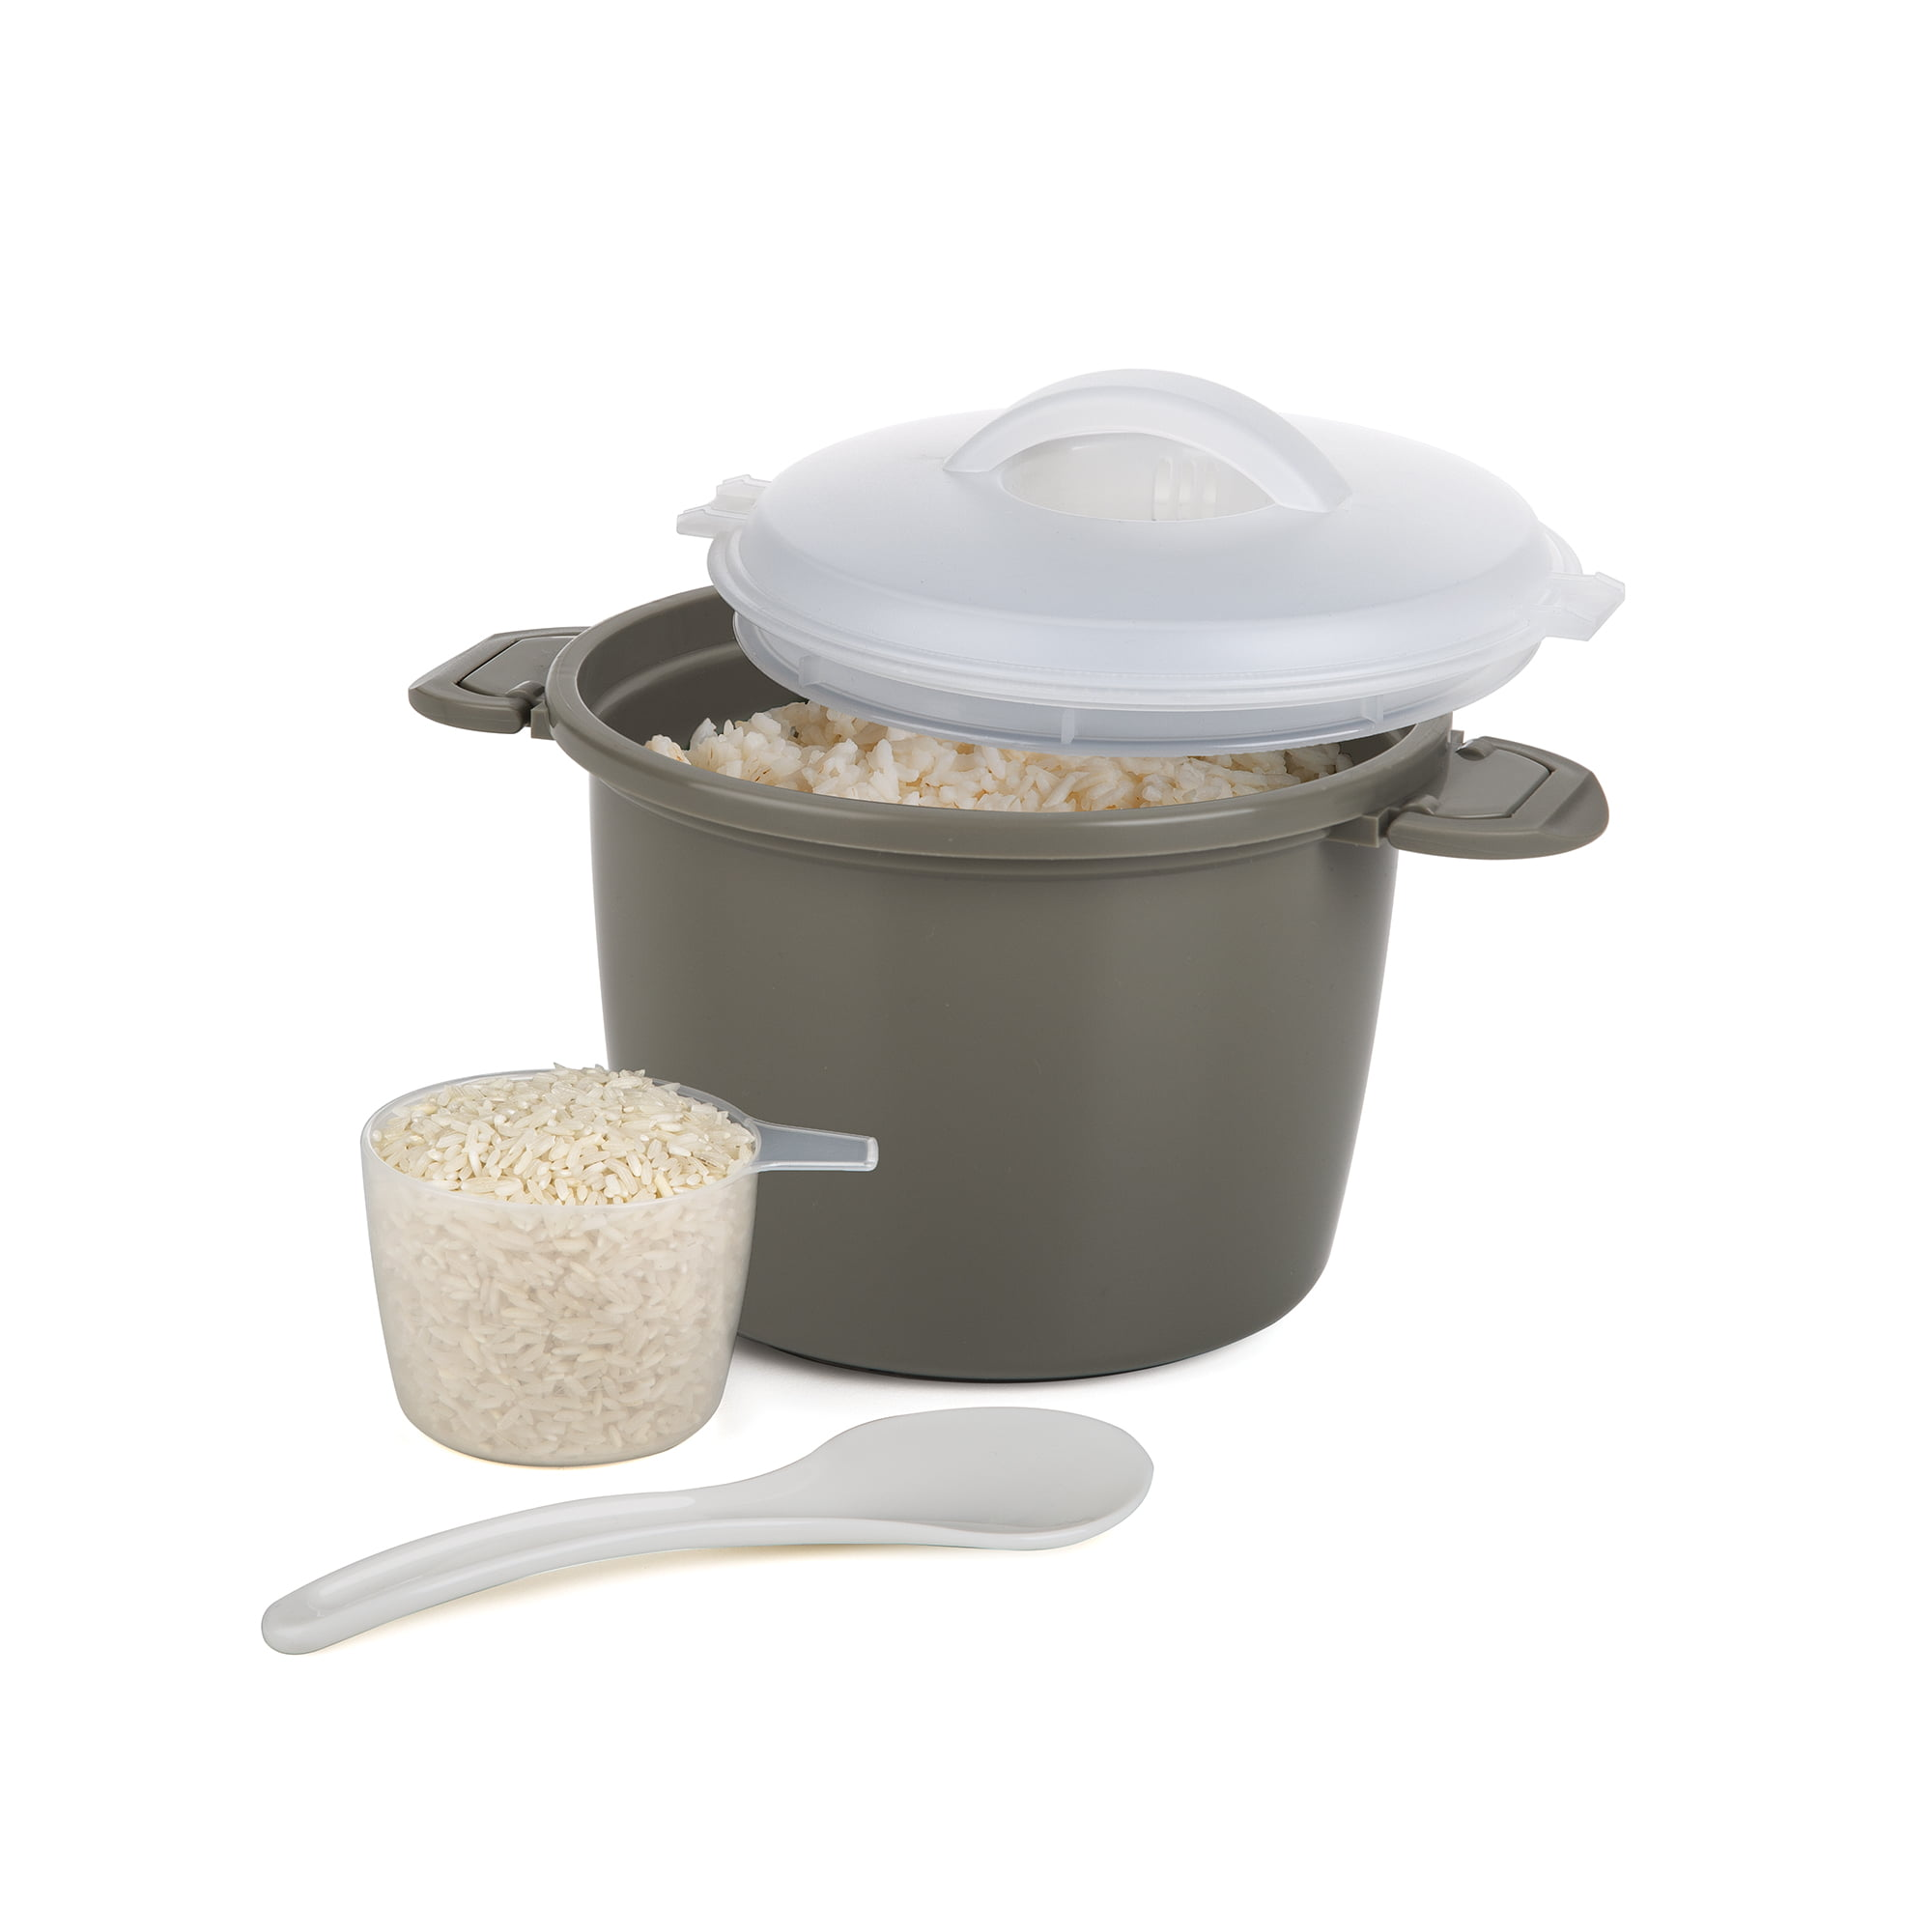 Progressive Prep Solutions Microwave Rice Cooker, 4 Piece Plastic Set - Walmart.com